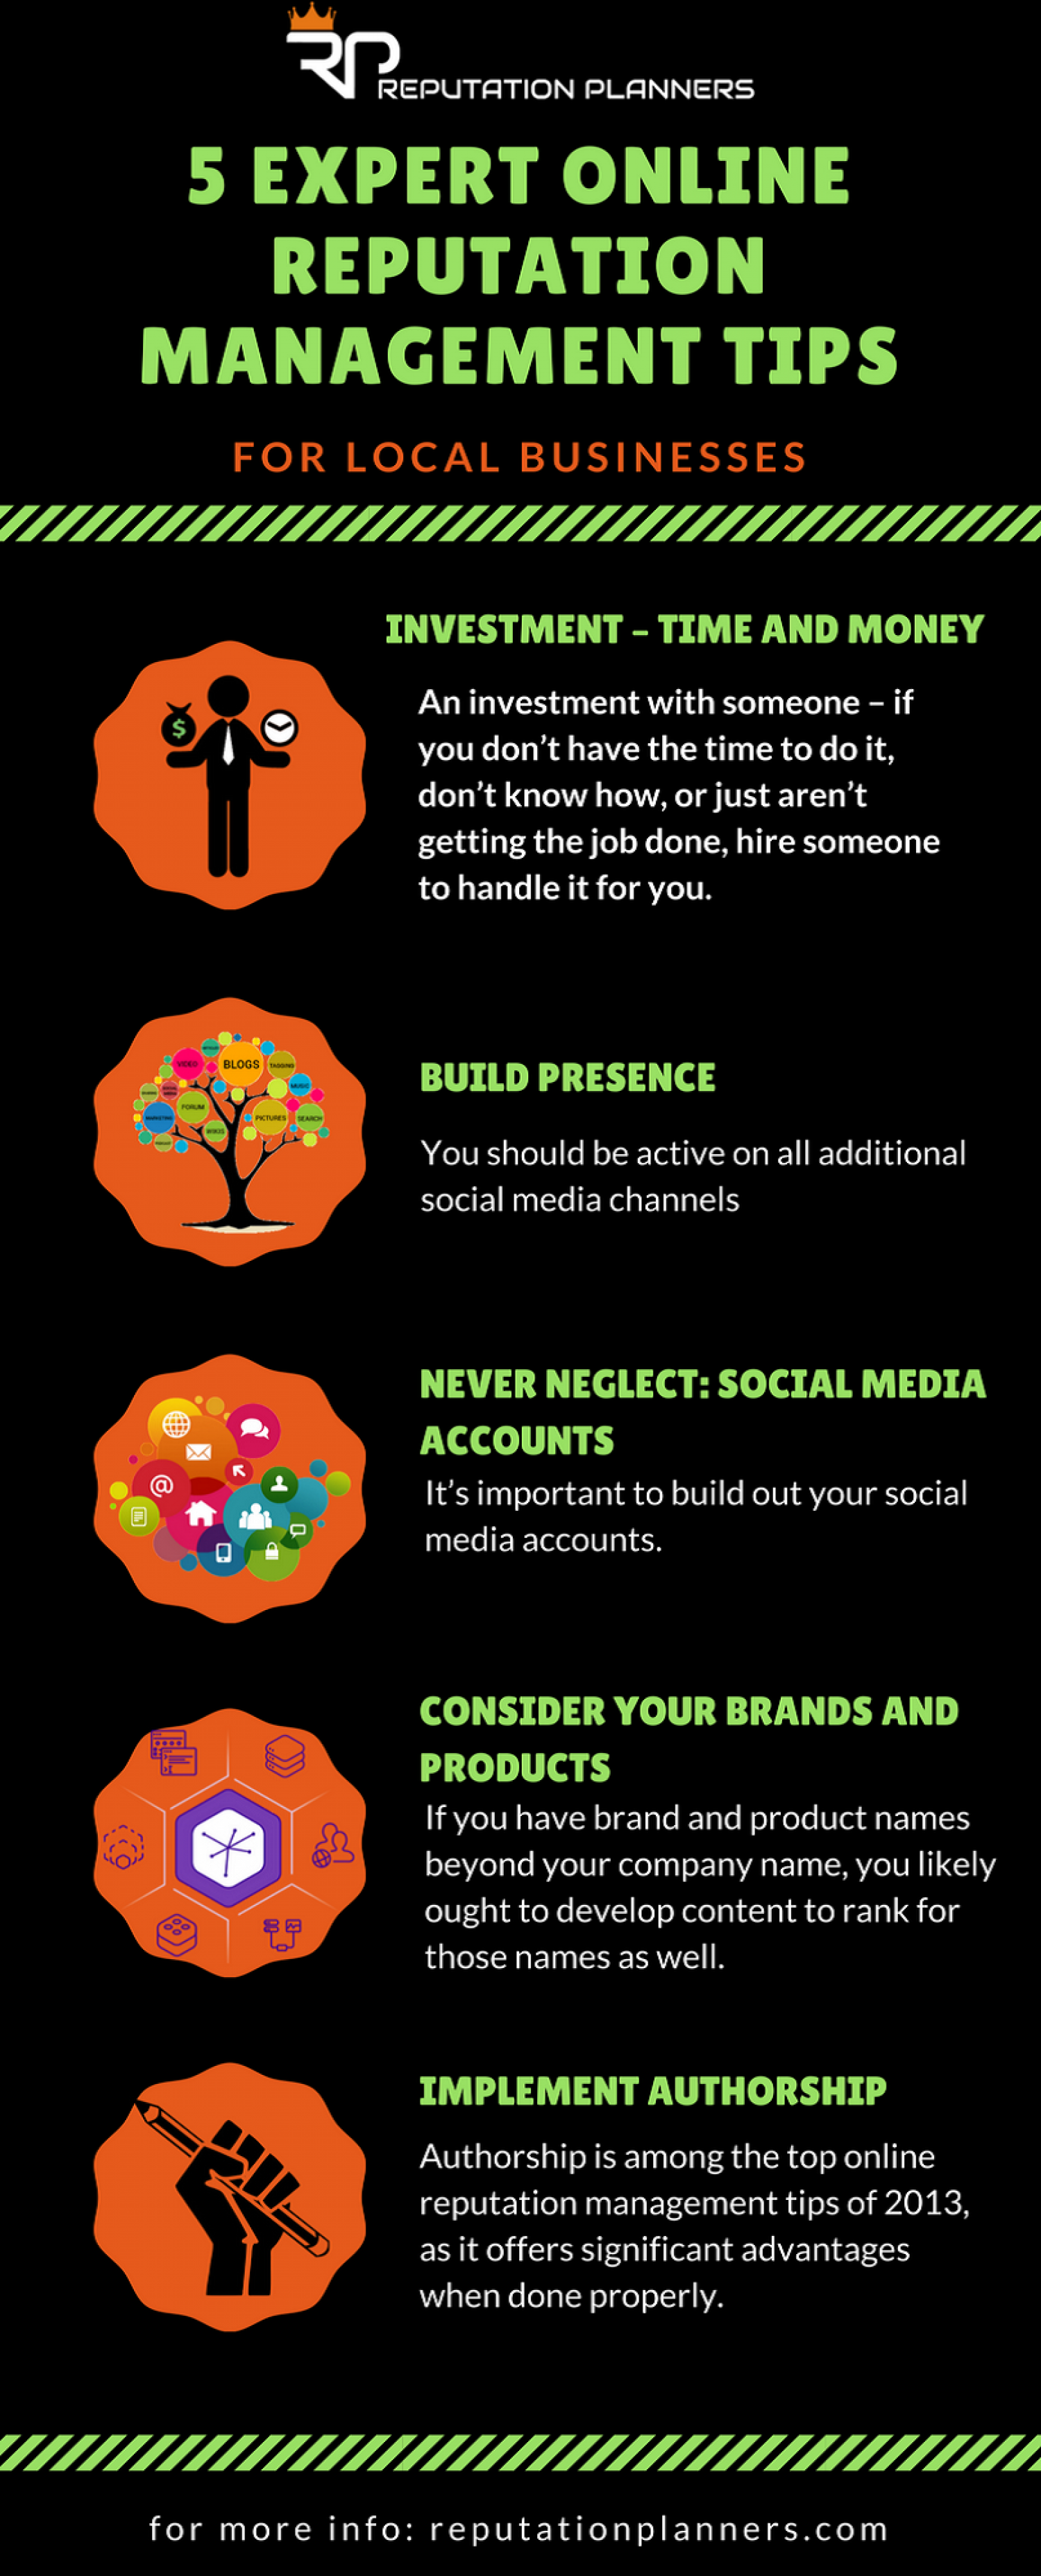 5 Expert Online Reputation Management Tips Infographic